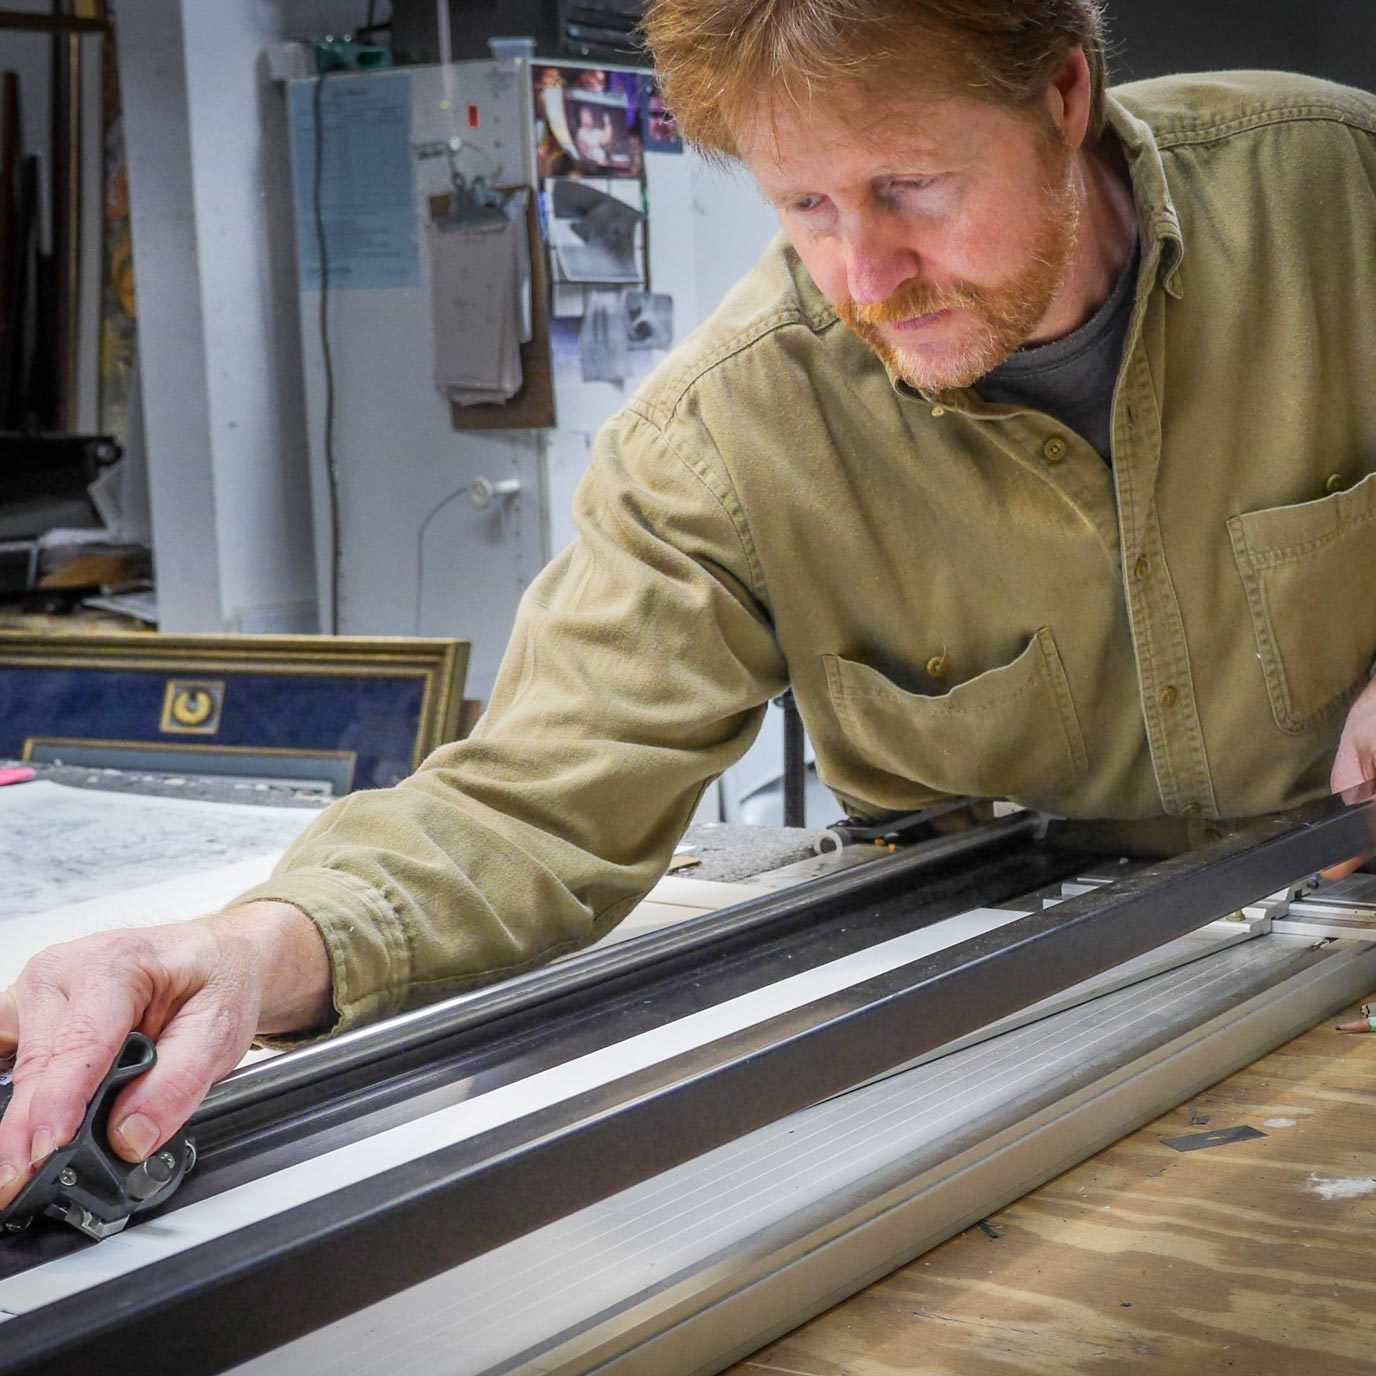 Cutting a mat for custom picture framing in Fayetteville, NC.